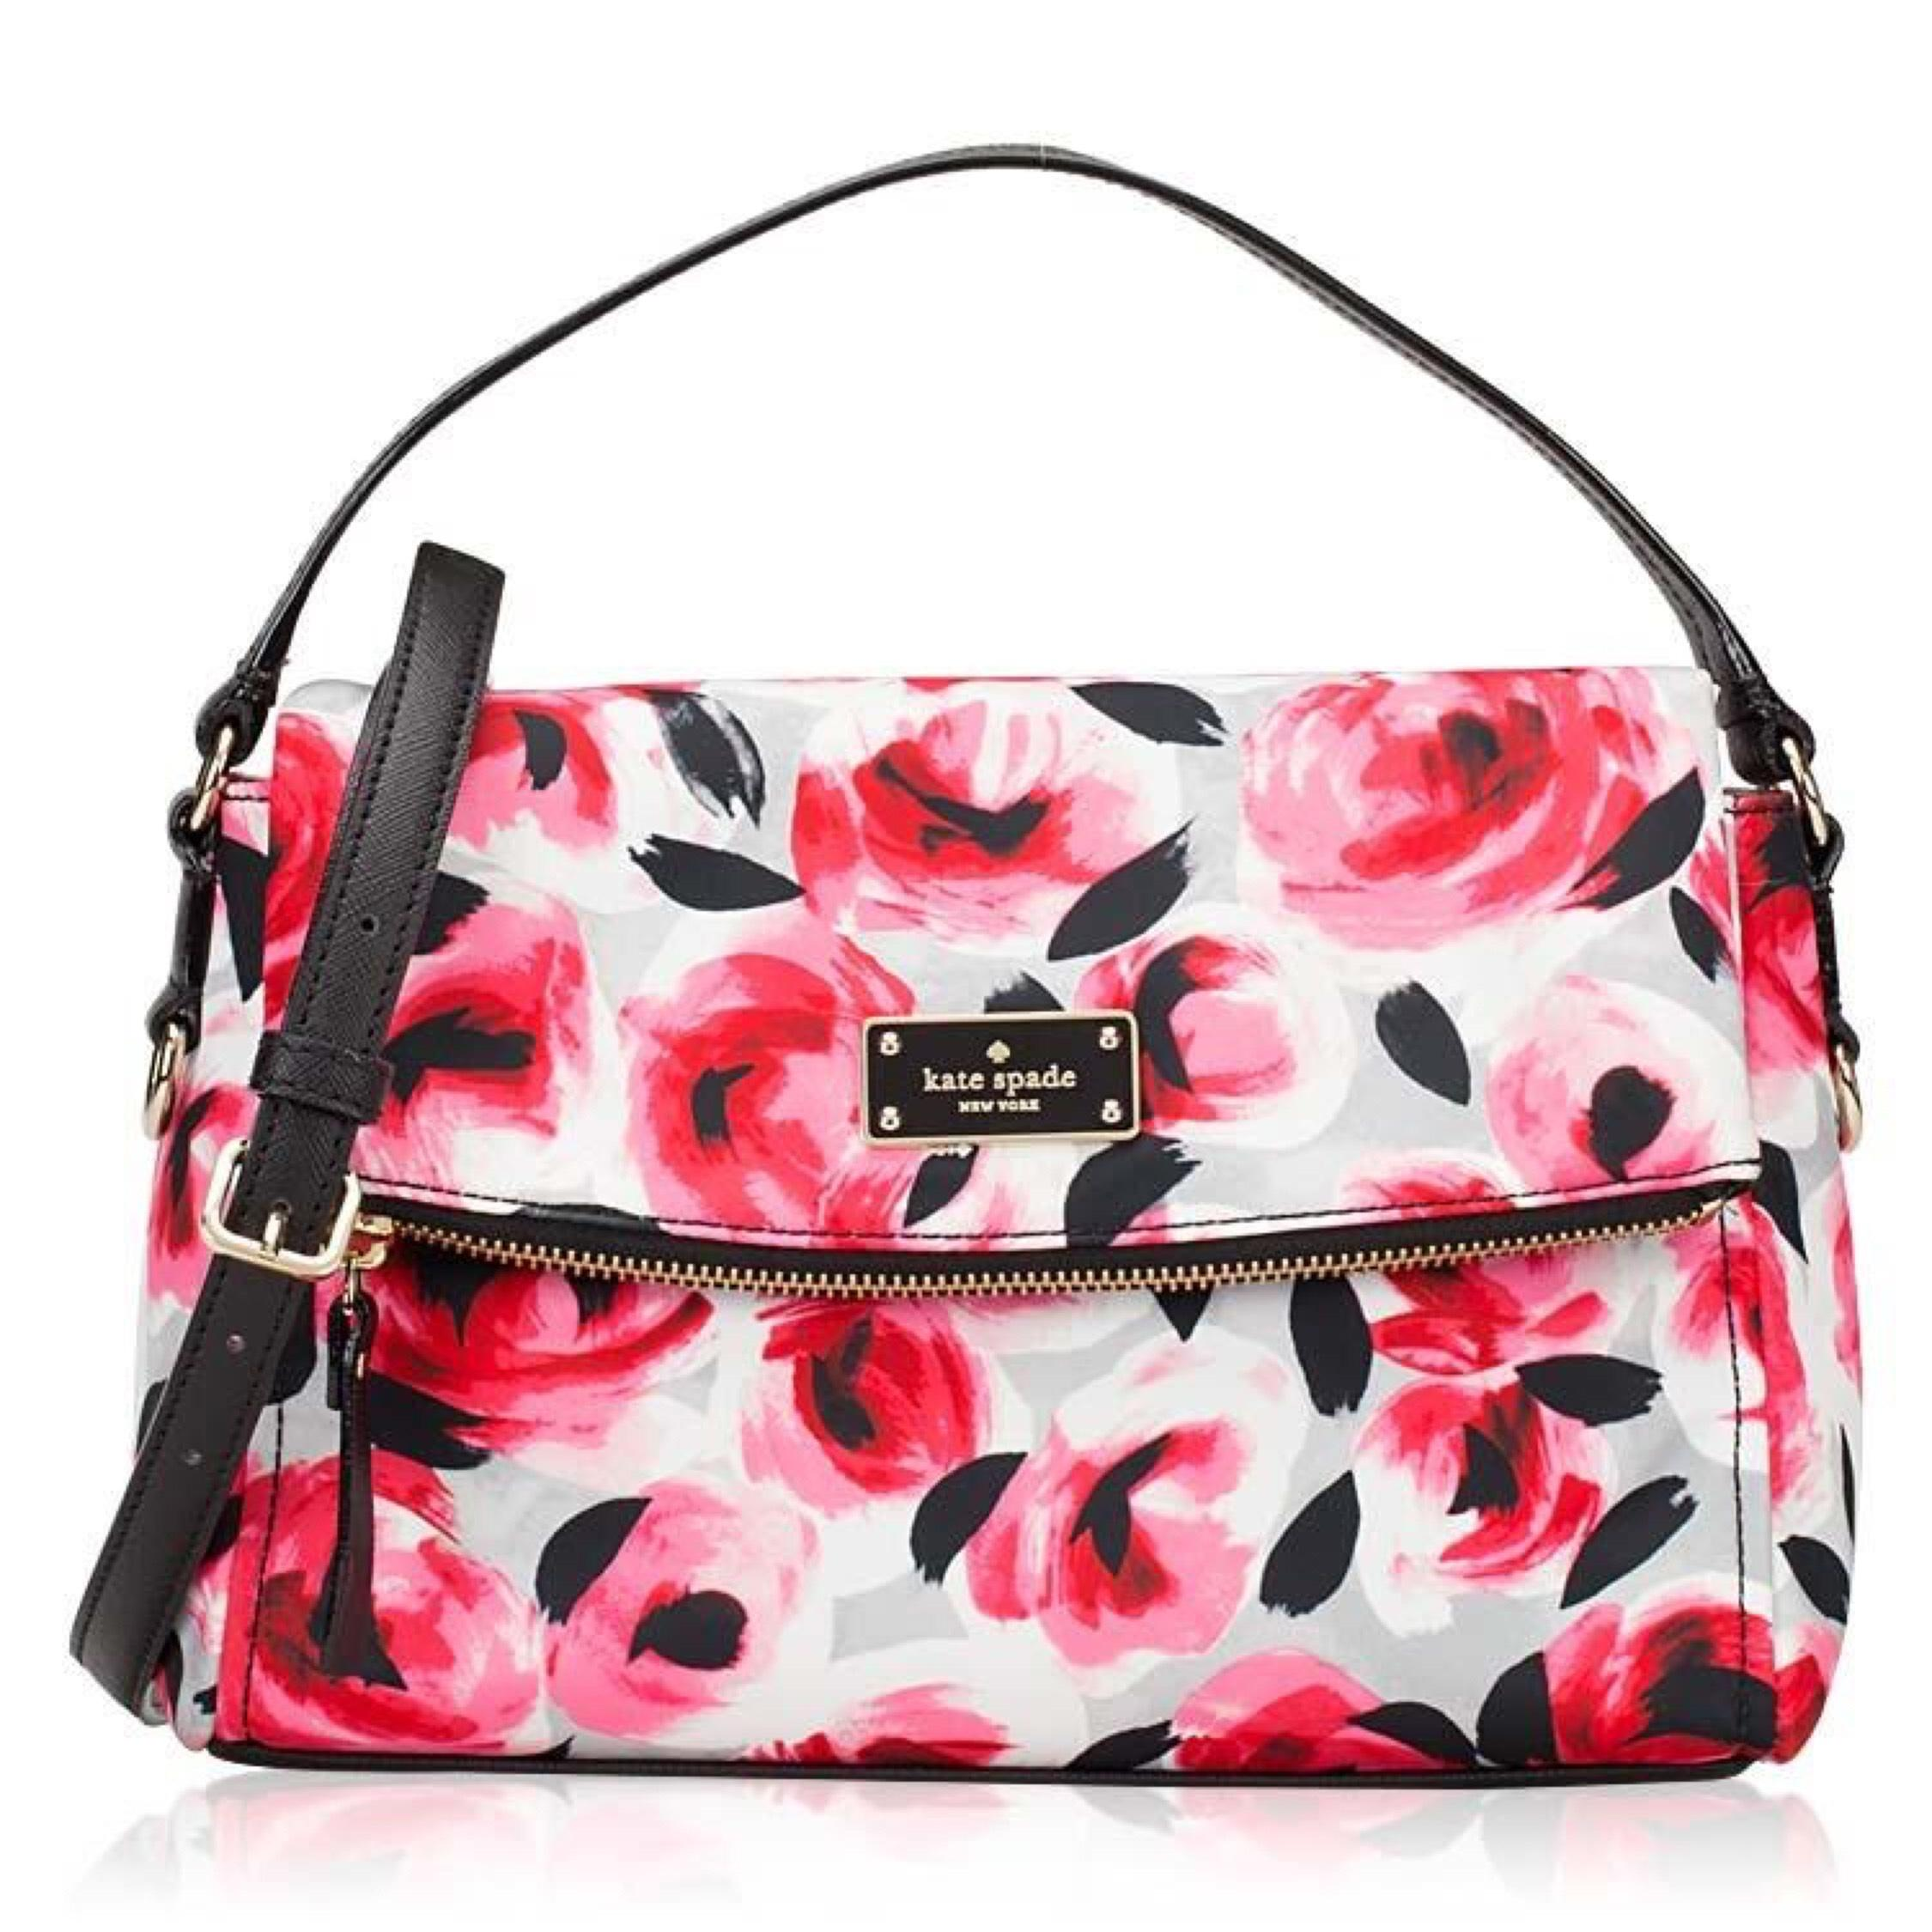 Kate Spade Blake Avenue Miri Rose Bed Fold Over Flap Satchel Pink Cross Body Bag On Sale 42% ...